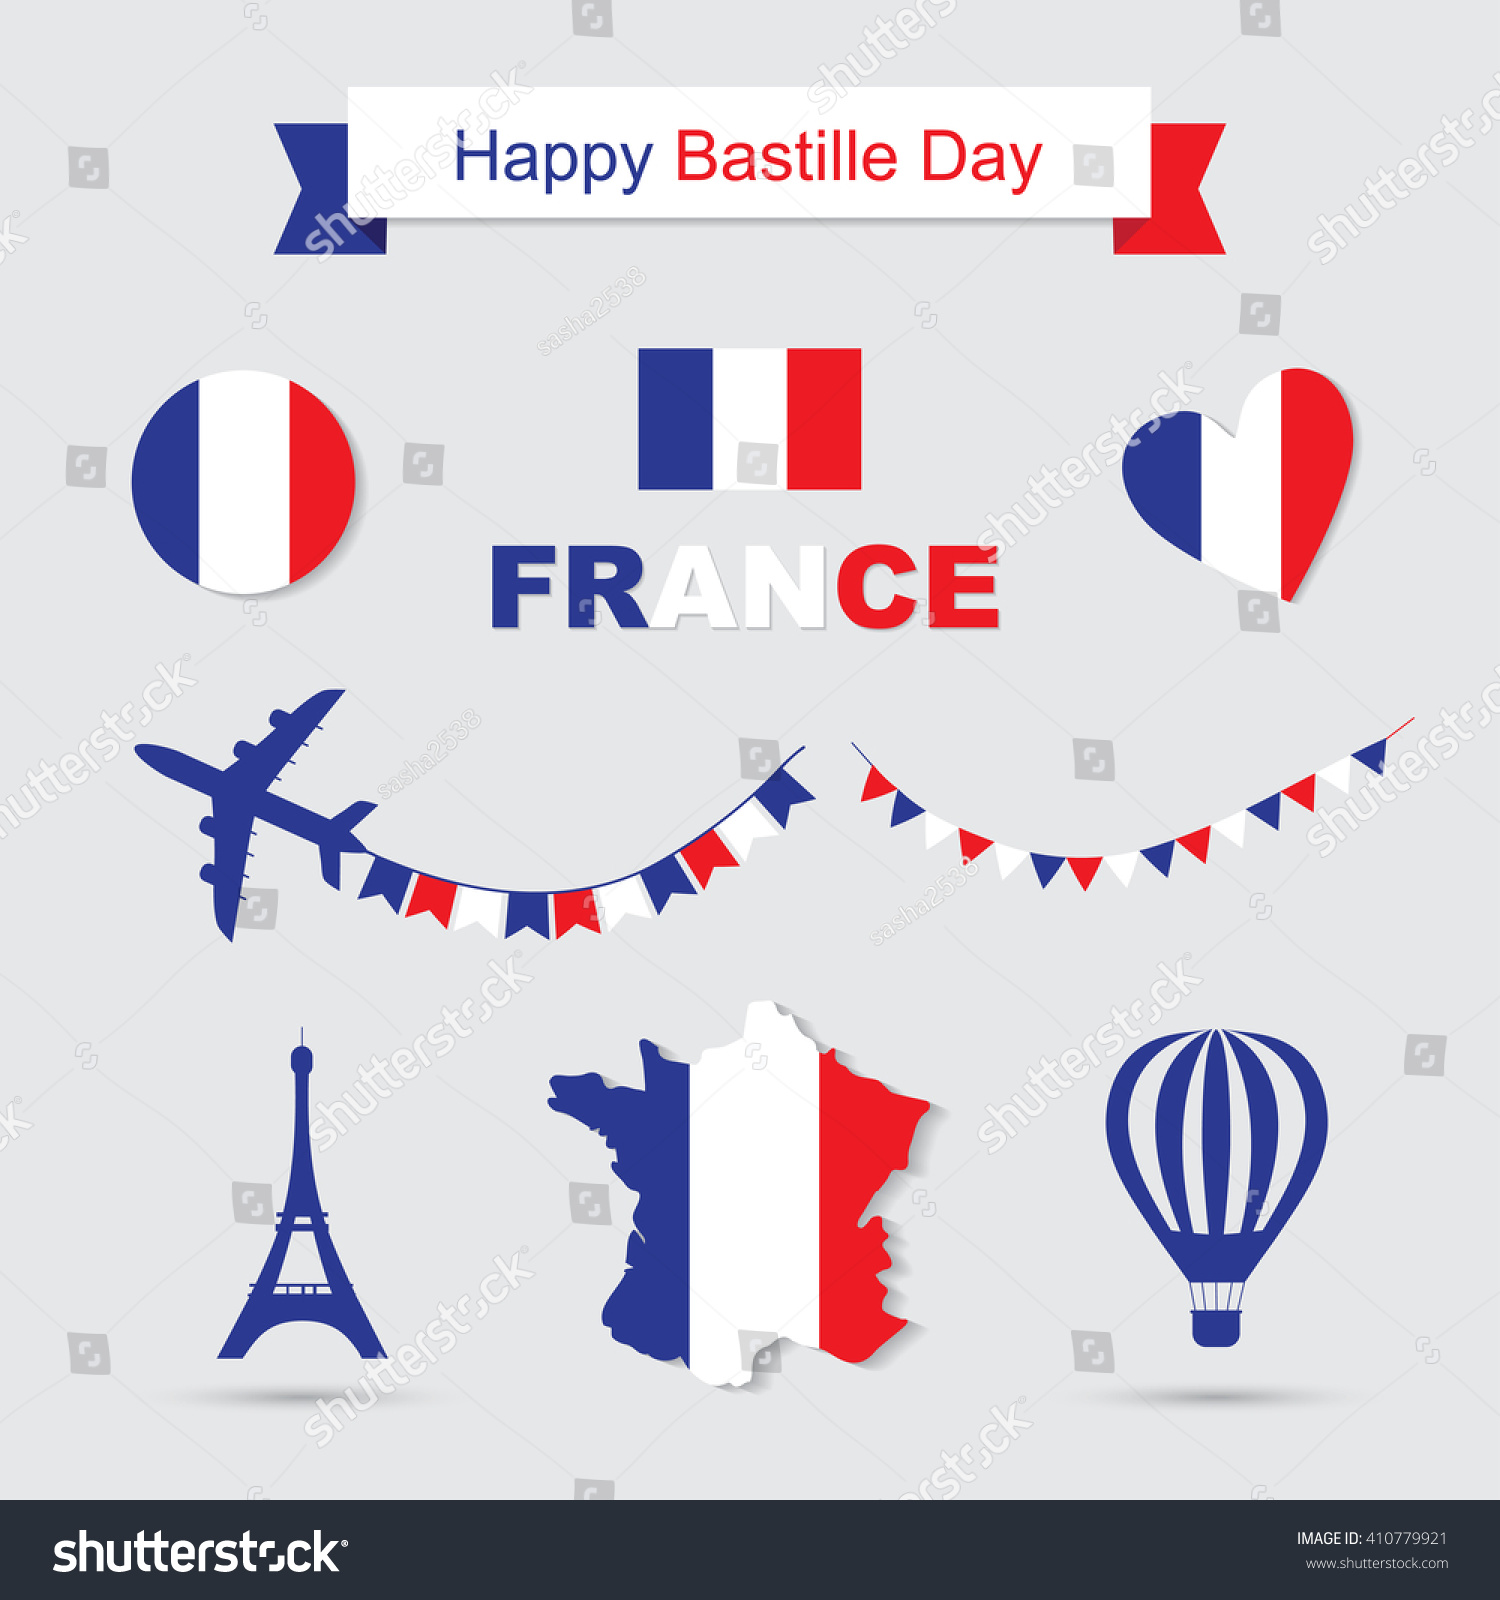 an analysis of bastille day This year's bastille day celebrations on saturday promise to be even more lively  and patriotic than ever given france are playing in the world.